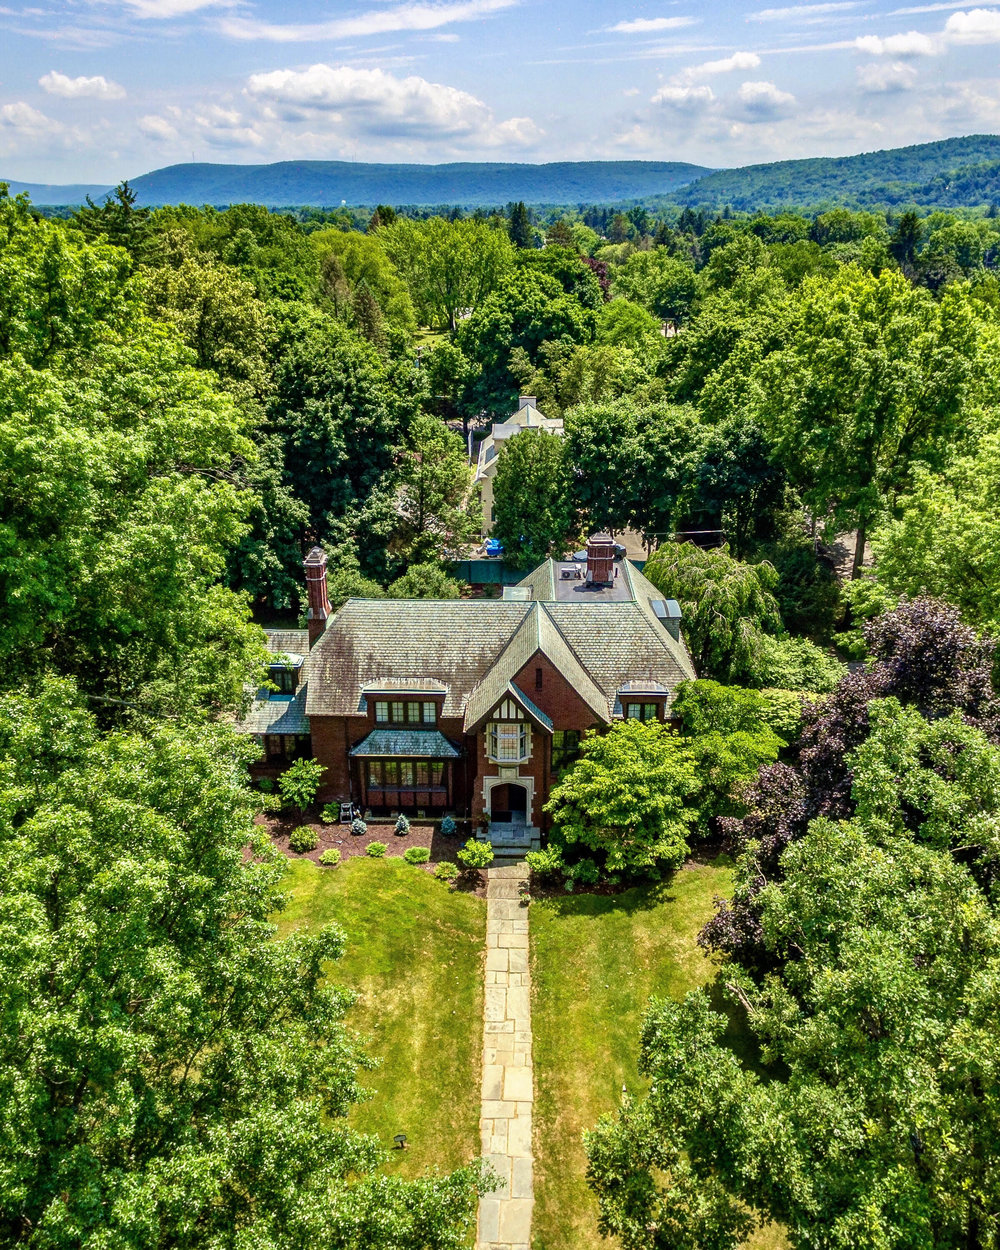 For Sale 719 Fassett Road, Elmira, NY Aerial Photo.jpg